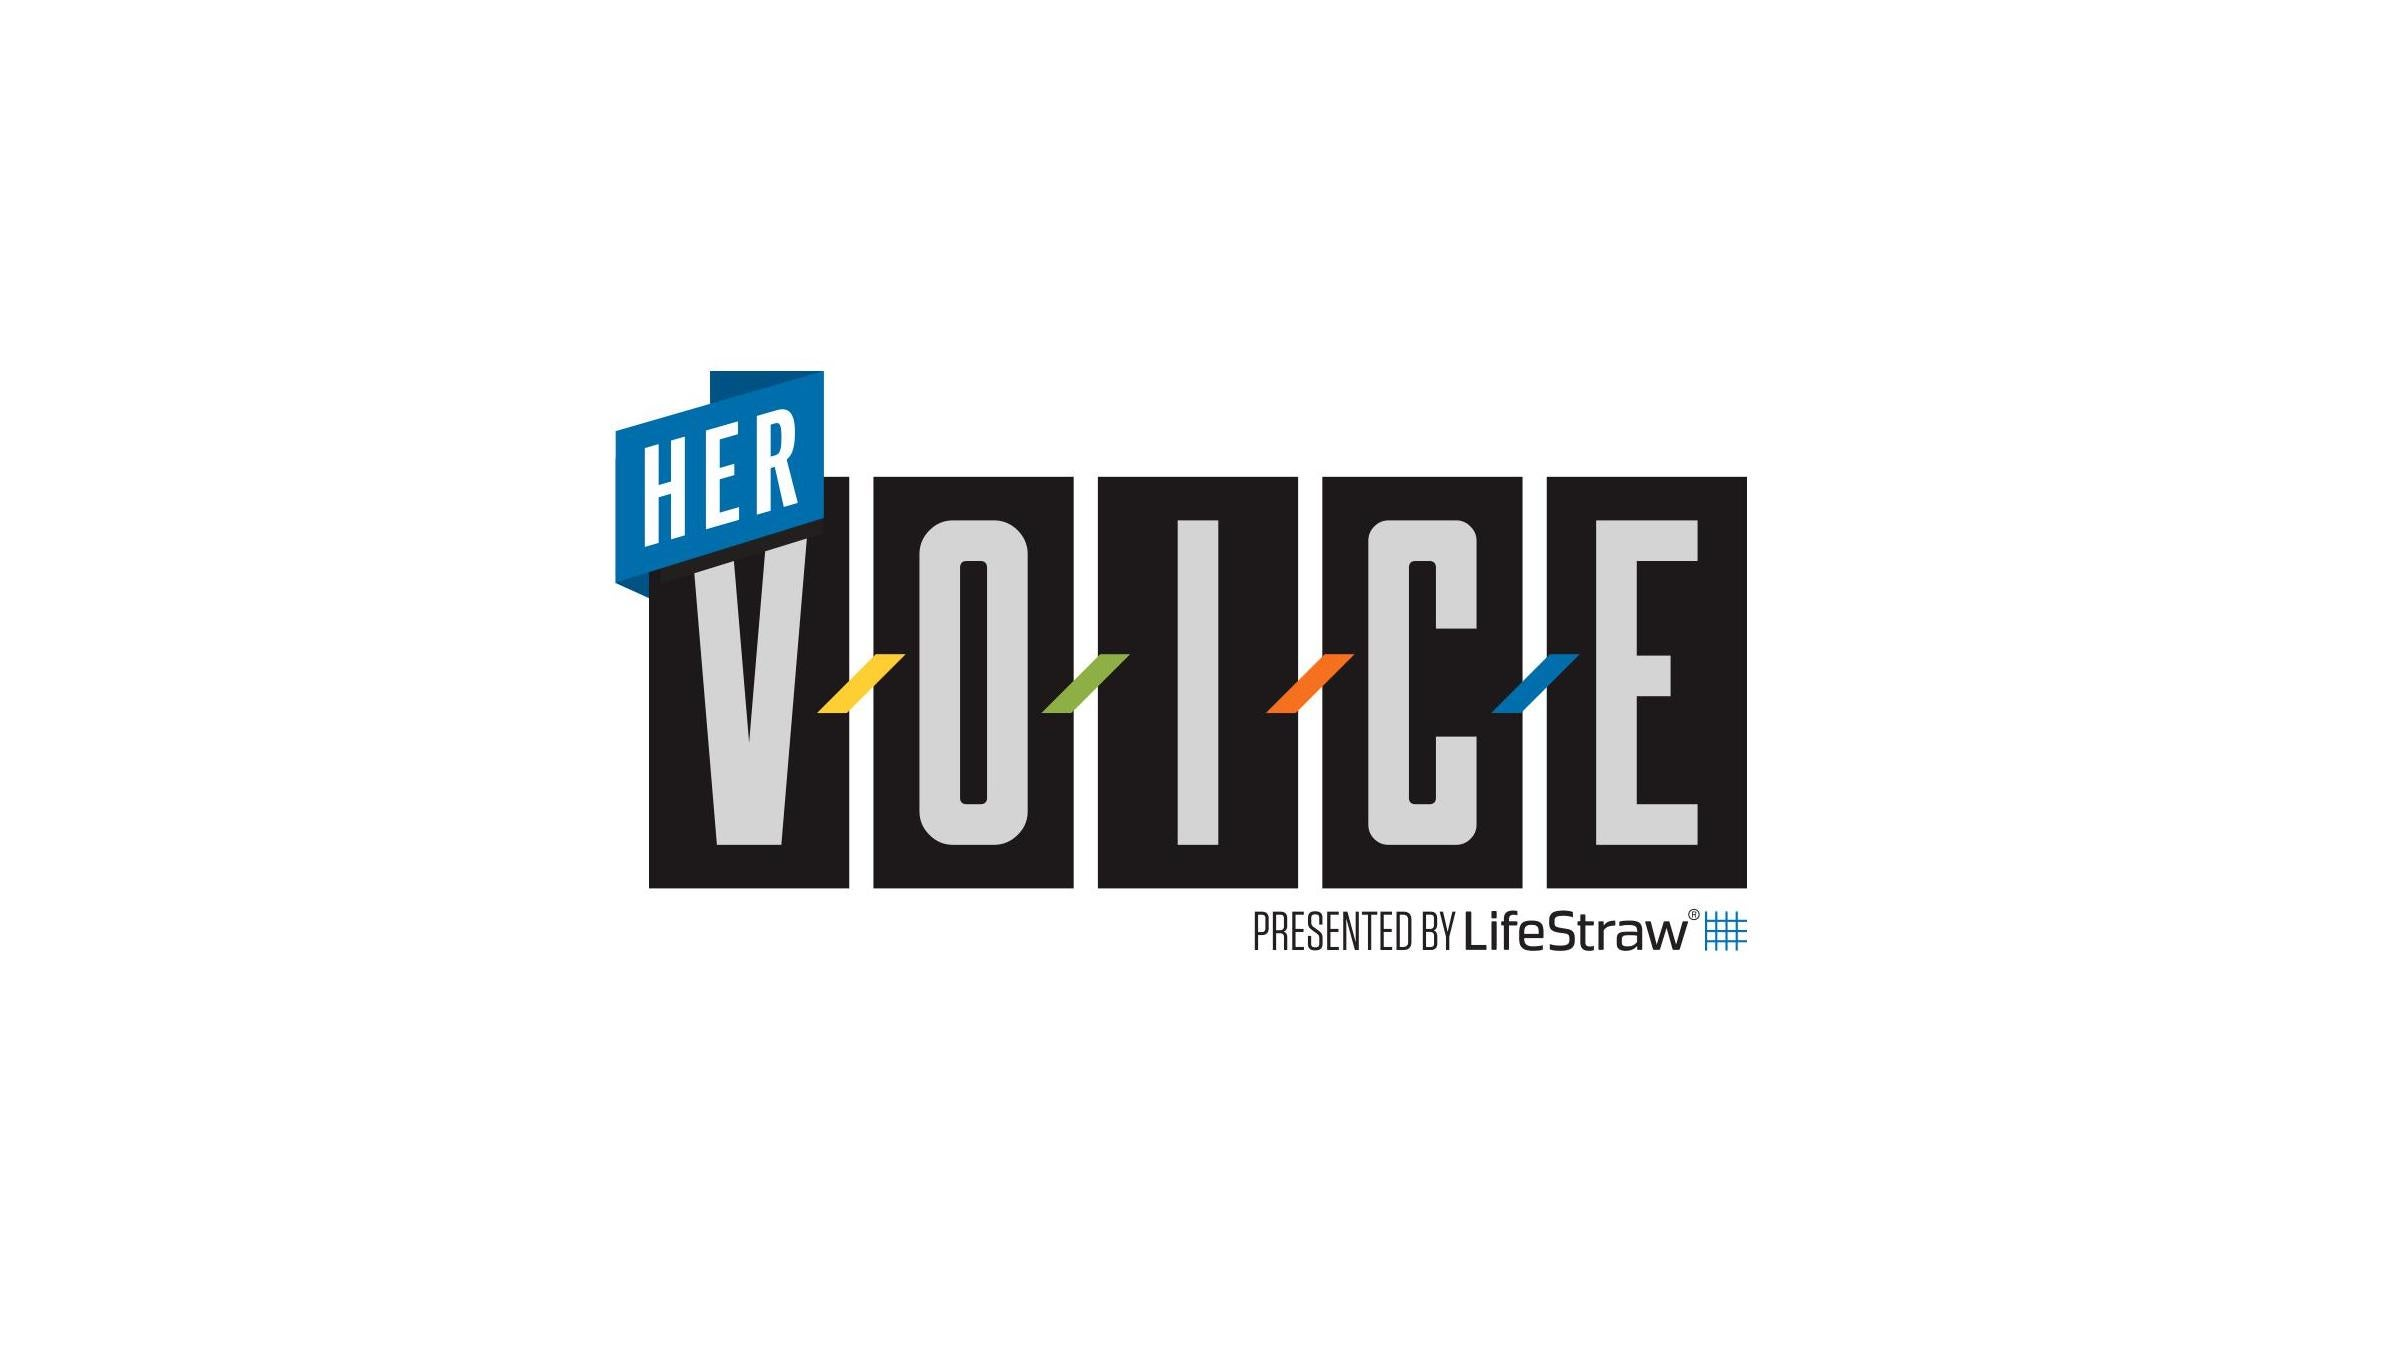 Logo for Her Voice presented by Lifestraw